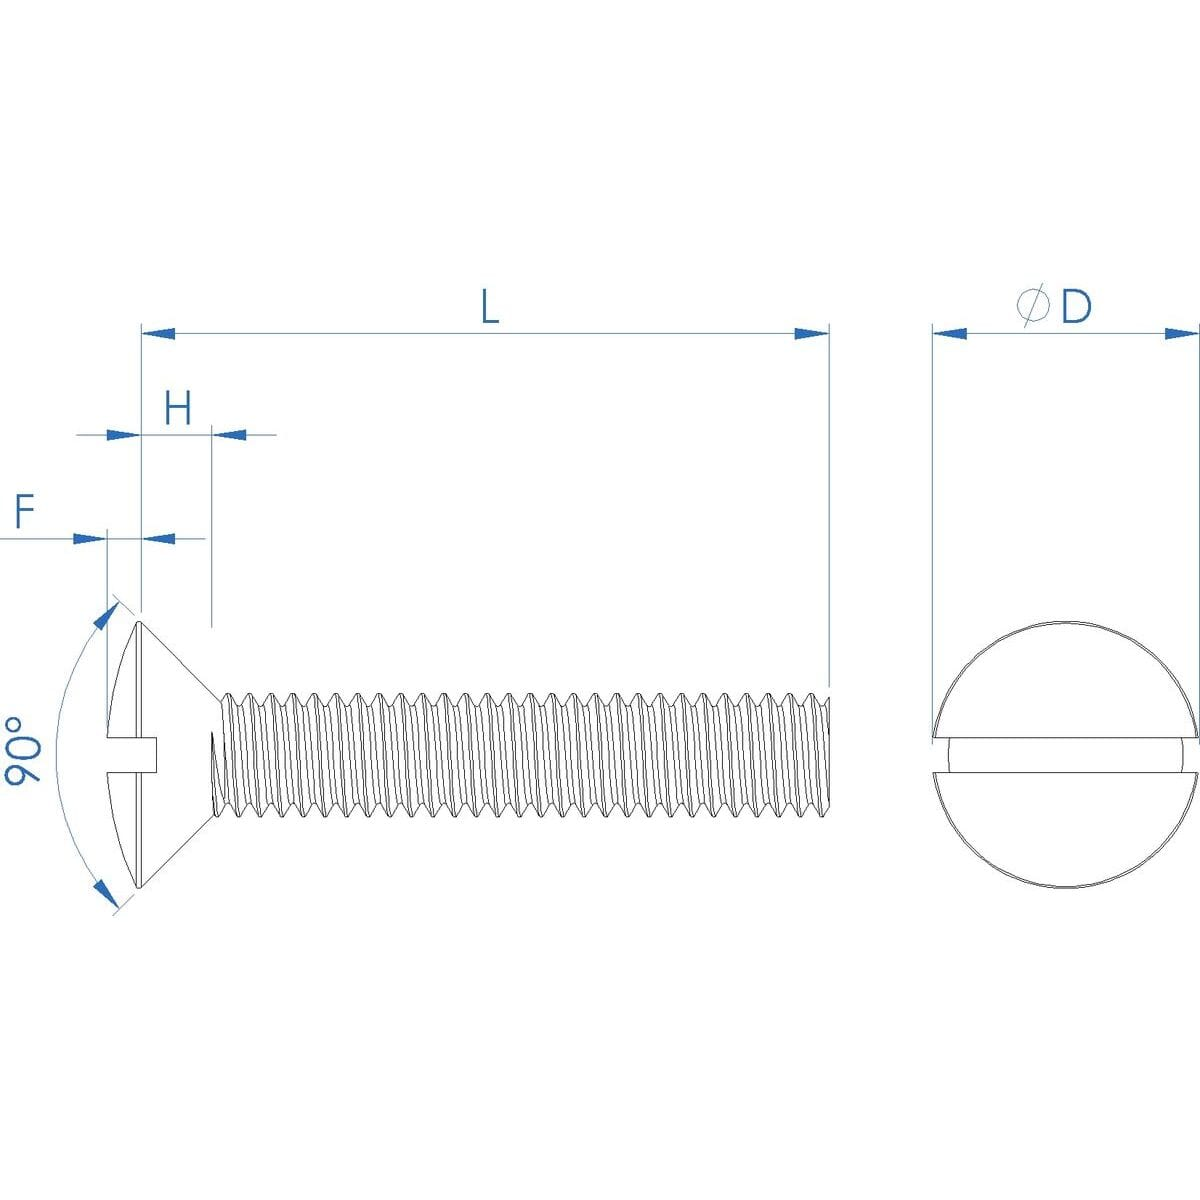 M3 x 30mm Raised Slotted Countersunk Screws (DIN 964) - Stainless Steel (A2) Drawing